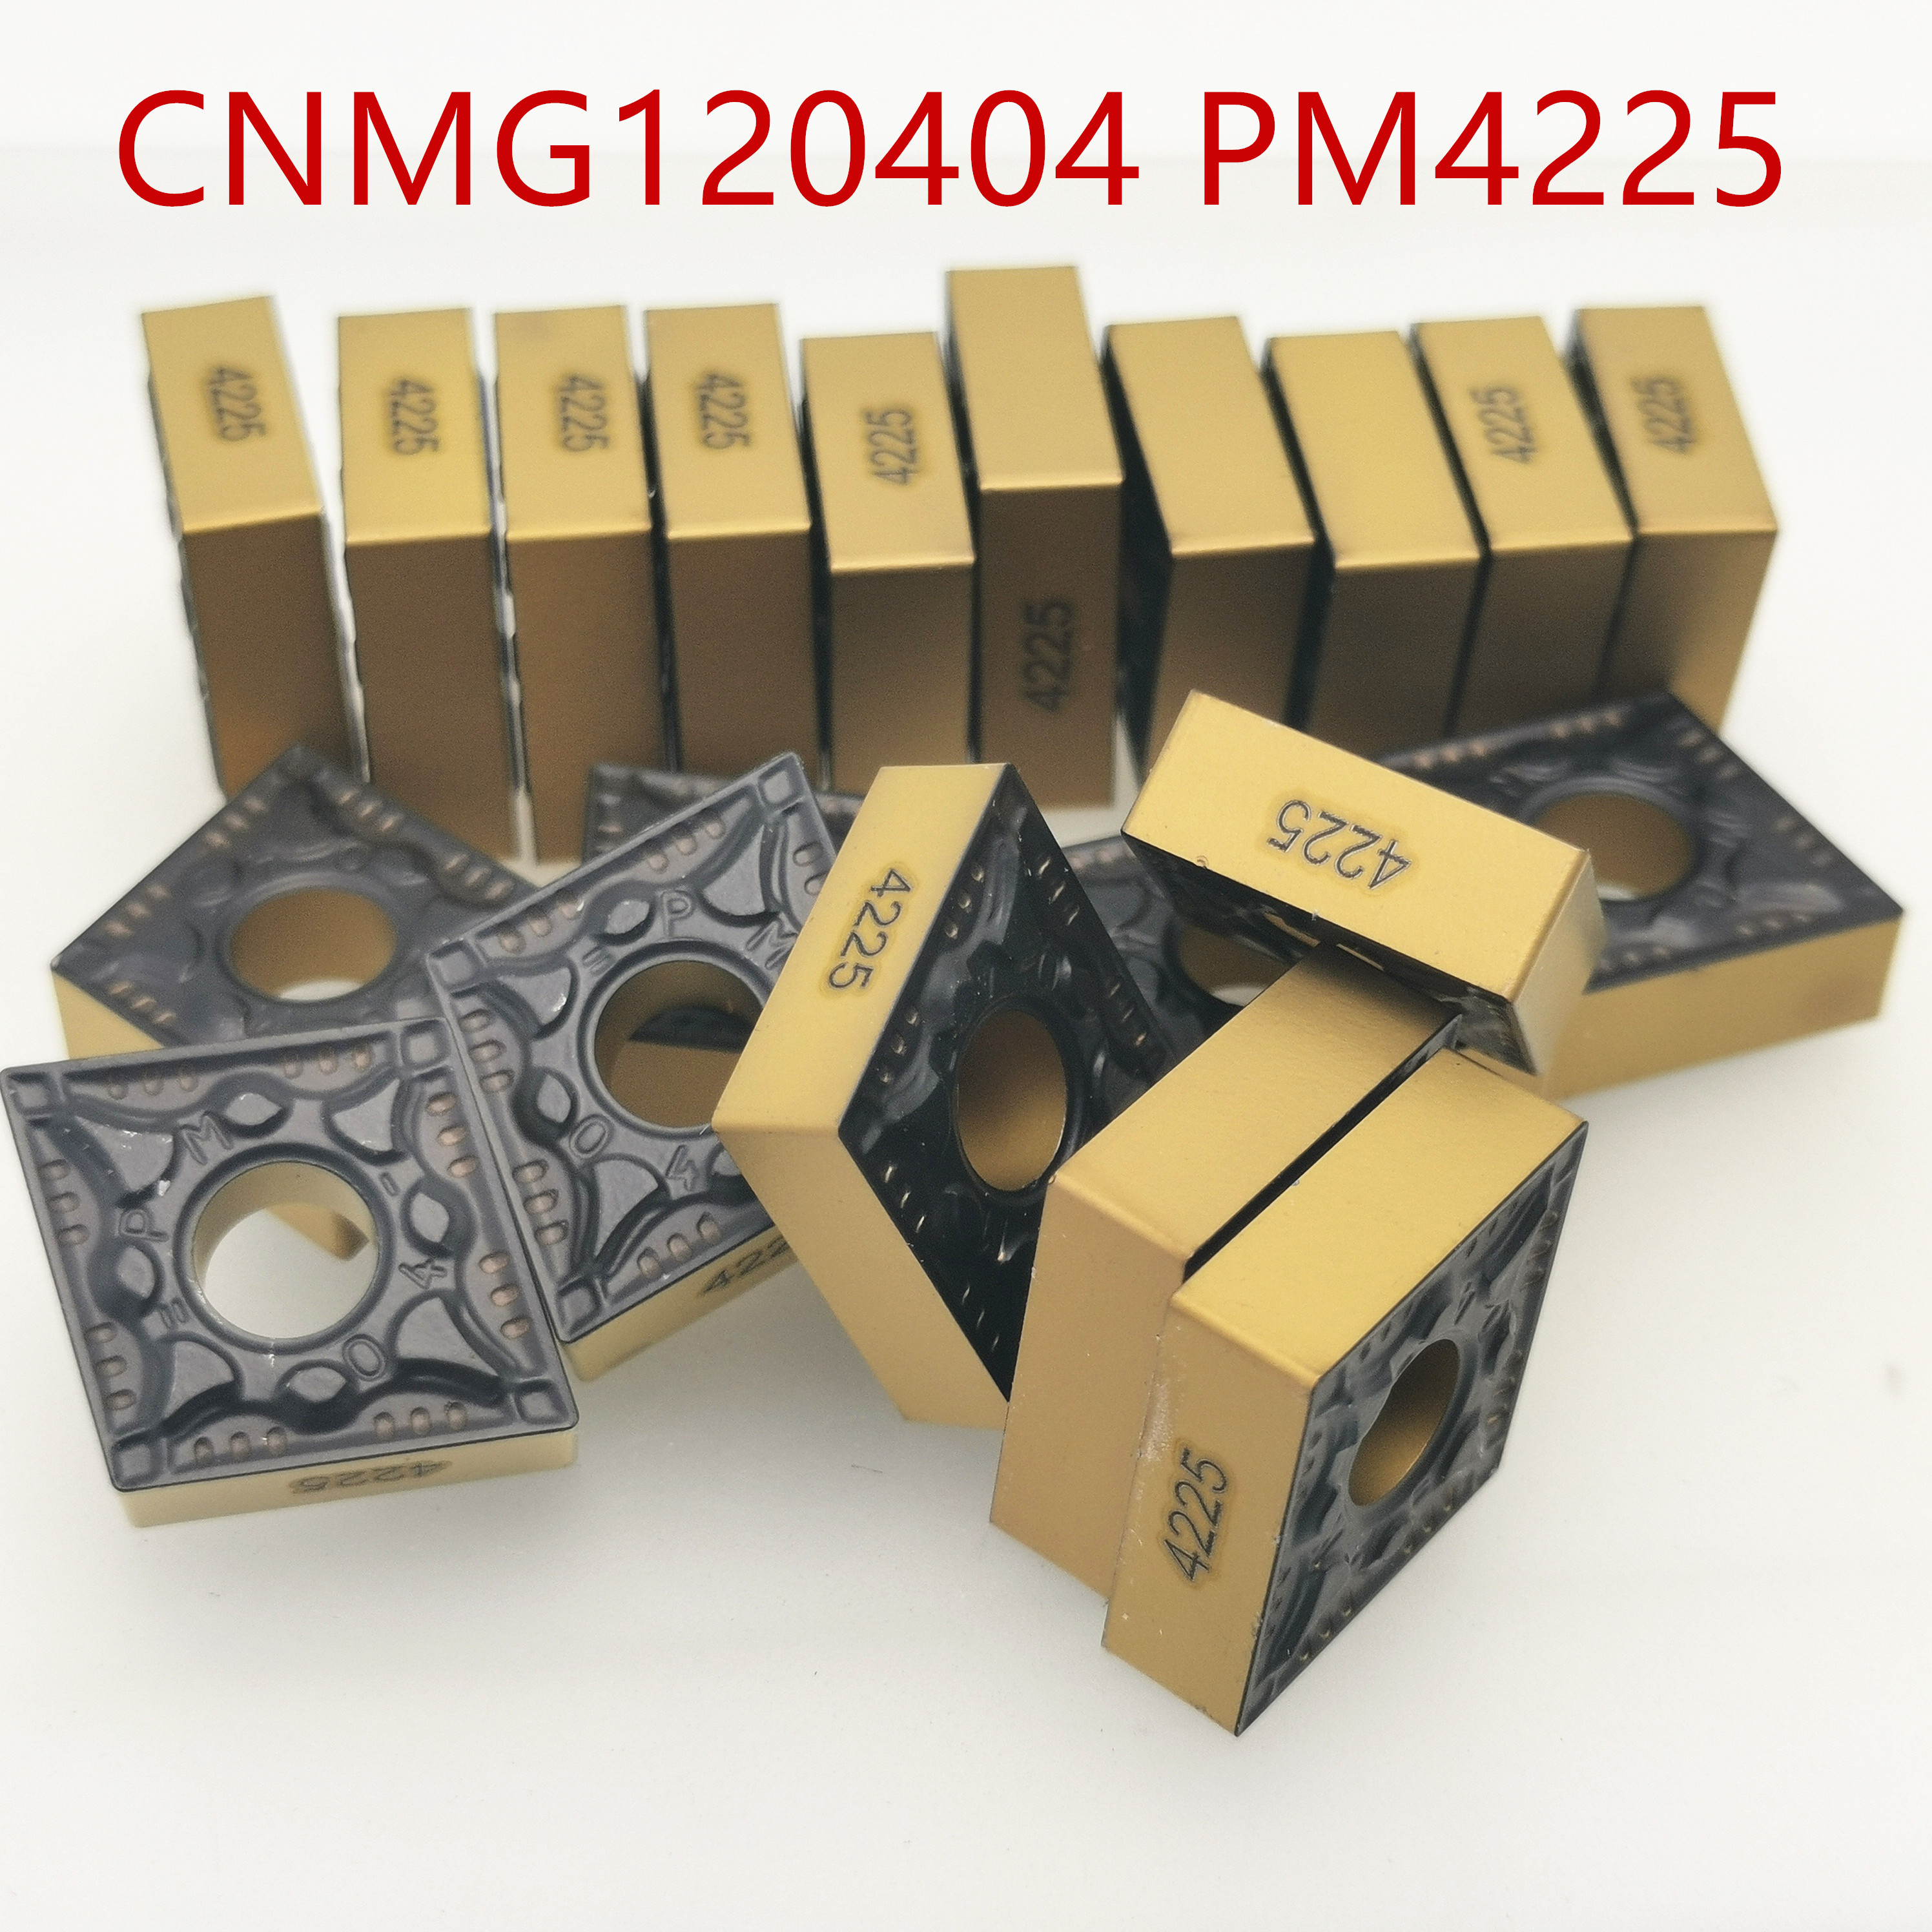 Hard Alloy CNMG120404 PM 4225 External Turning Tools Carbide Insert Lathe Tool CNMG 120404 PVD Turning Insert Tungsten Carbide